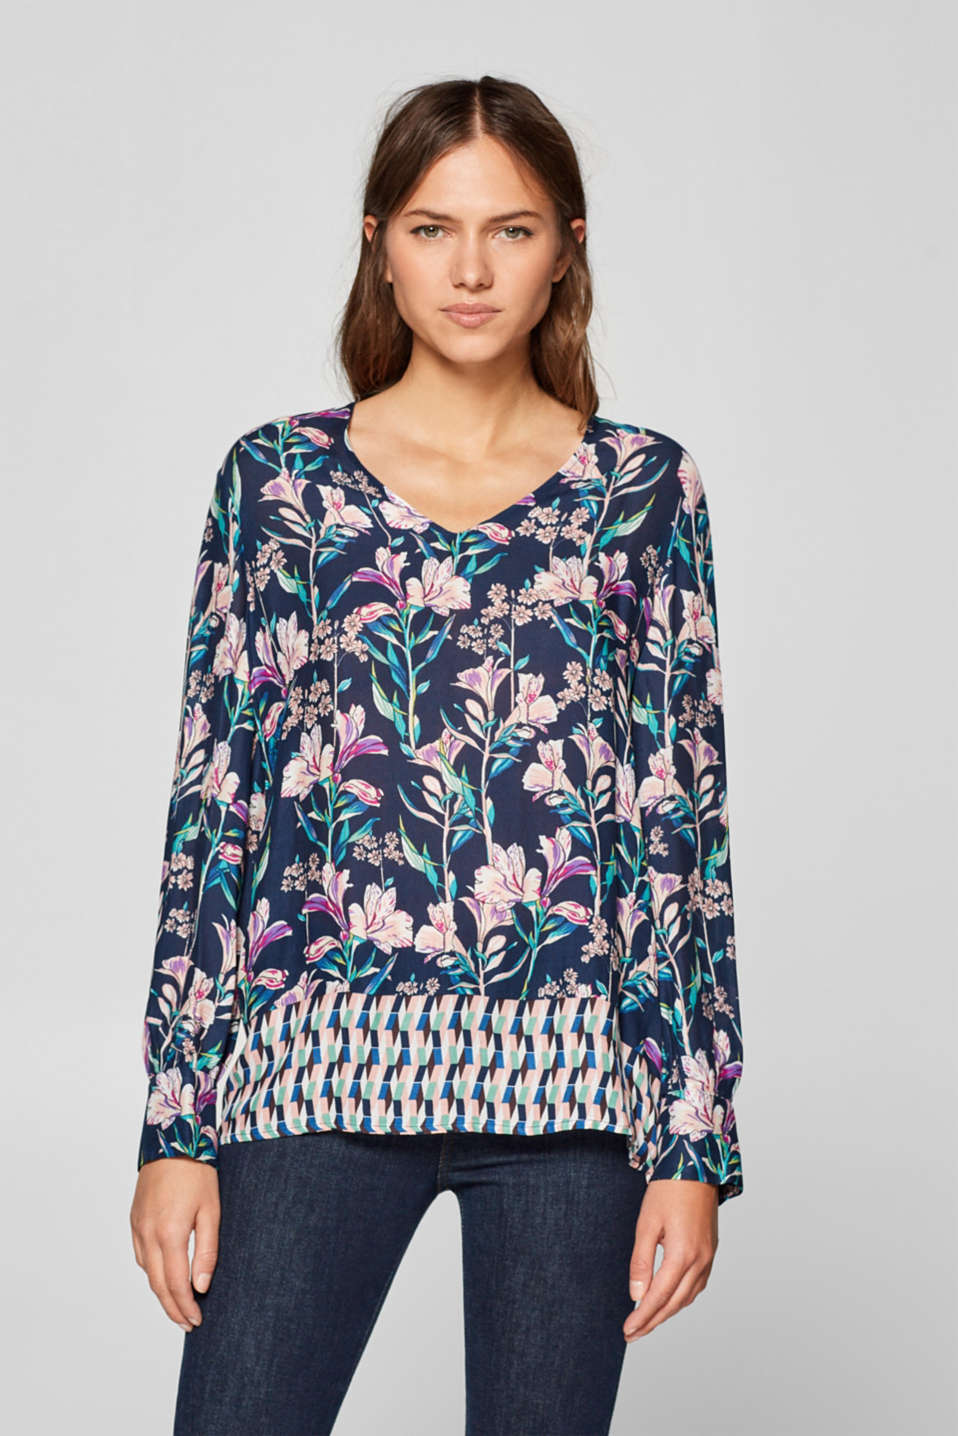 Esprit - Printed blouse with a contrasting hemline, 100% viscose